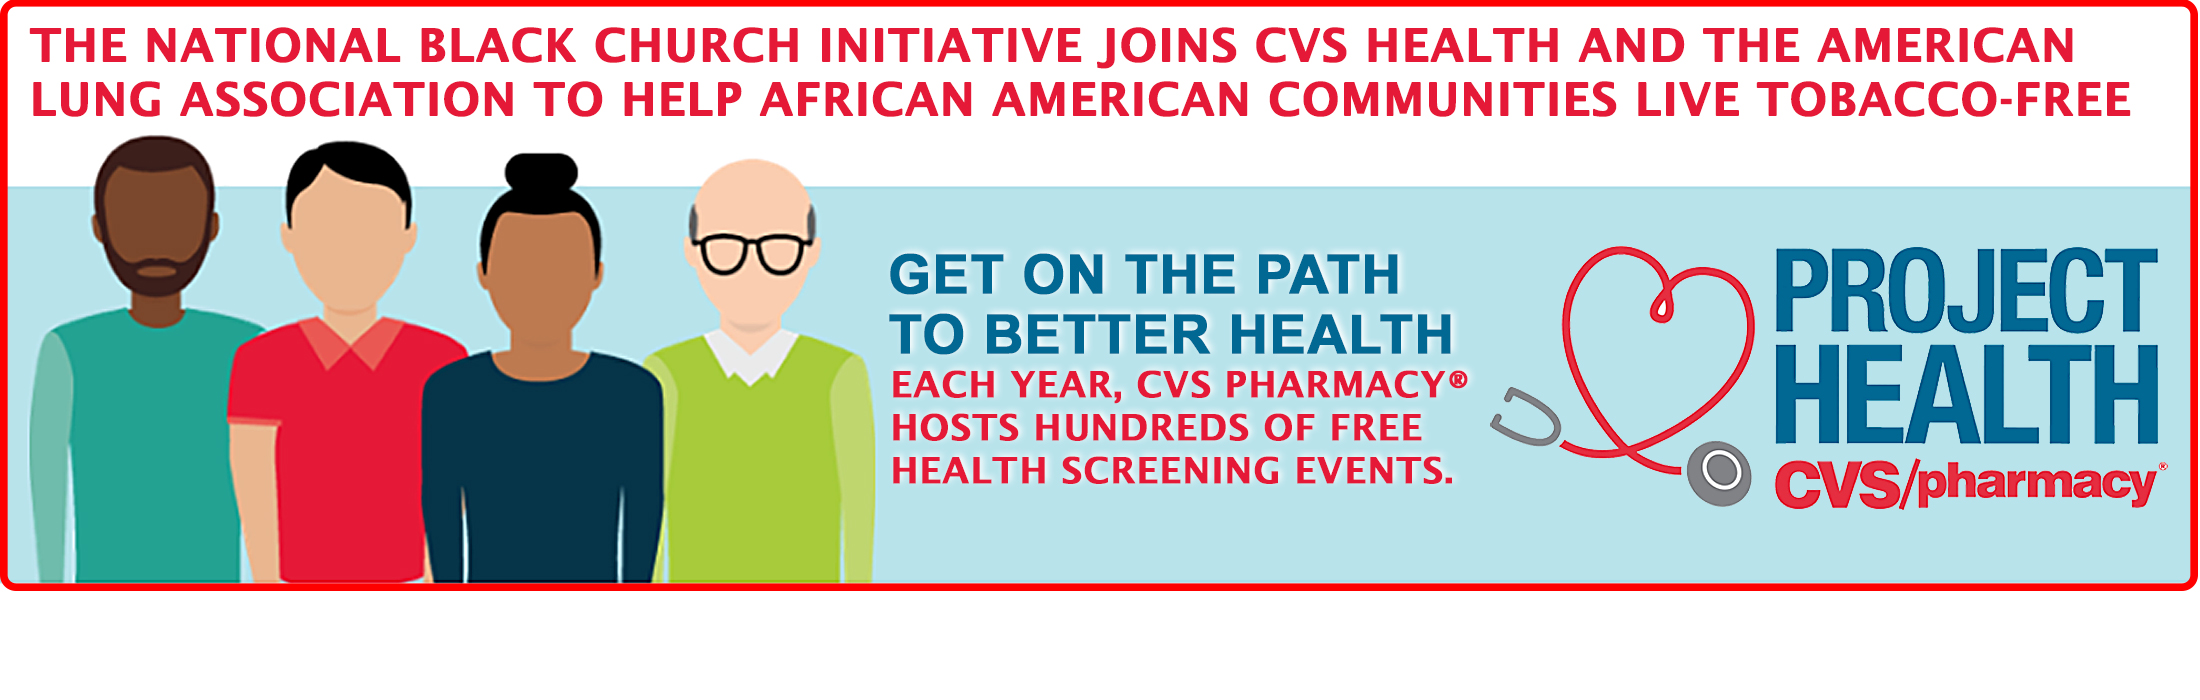 NBCI Joins CVS Health and the American Lung Association To Help African Americans Live Tobacco-Free